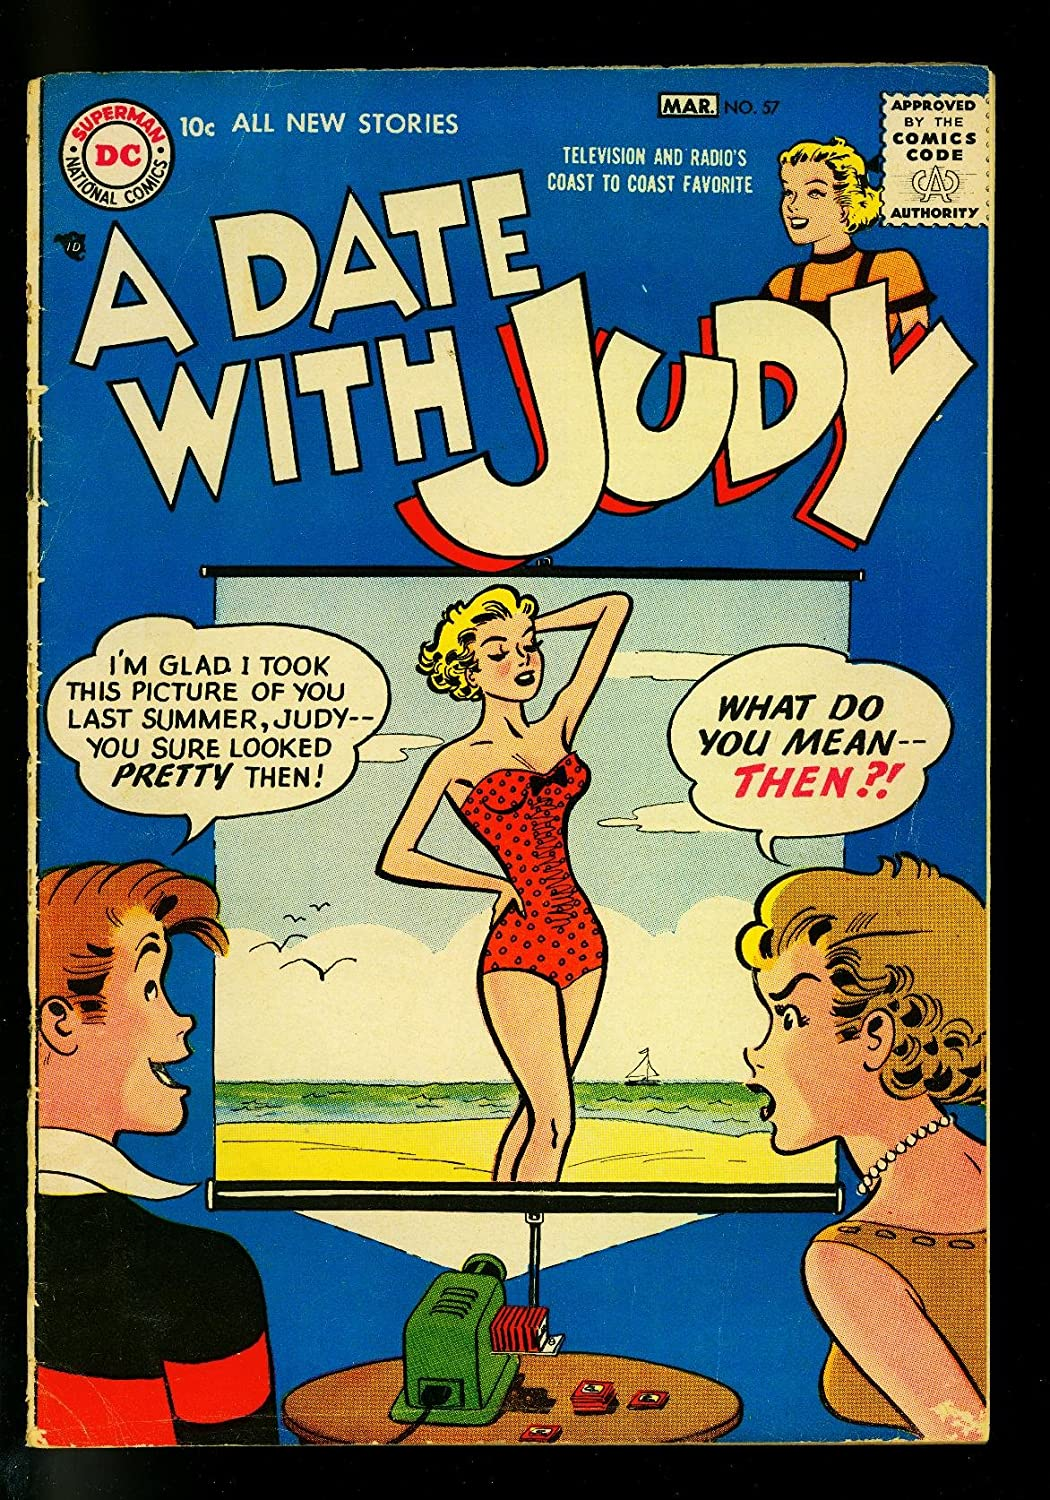 Date with Judy #57 1957- Swimsuit free Charlotte Mall Humo projector cover- DC slide